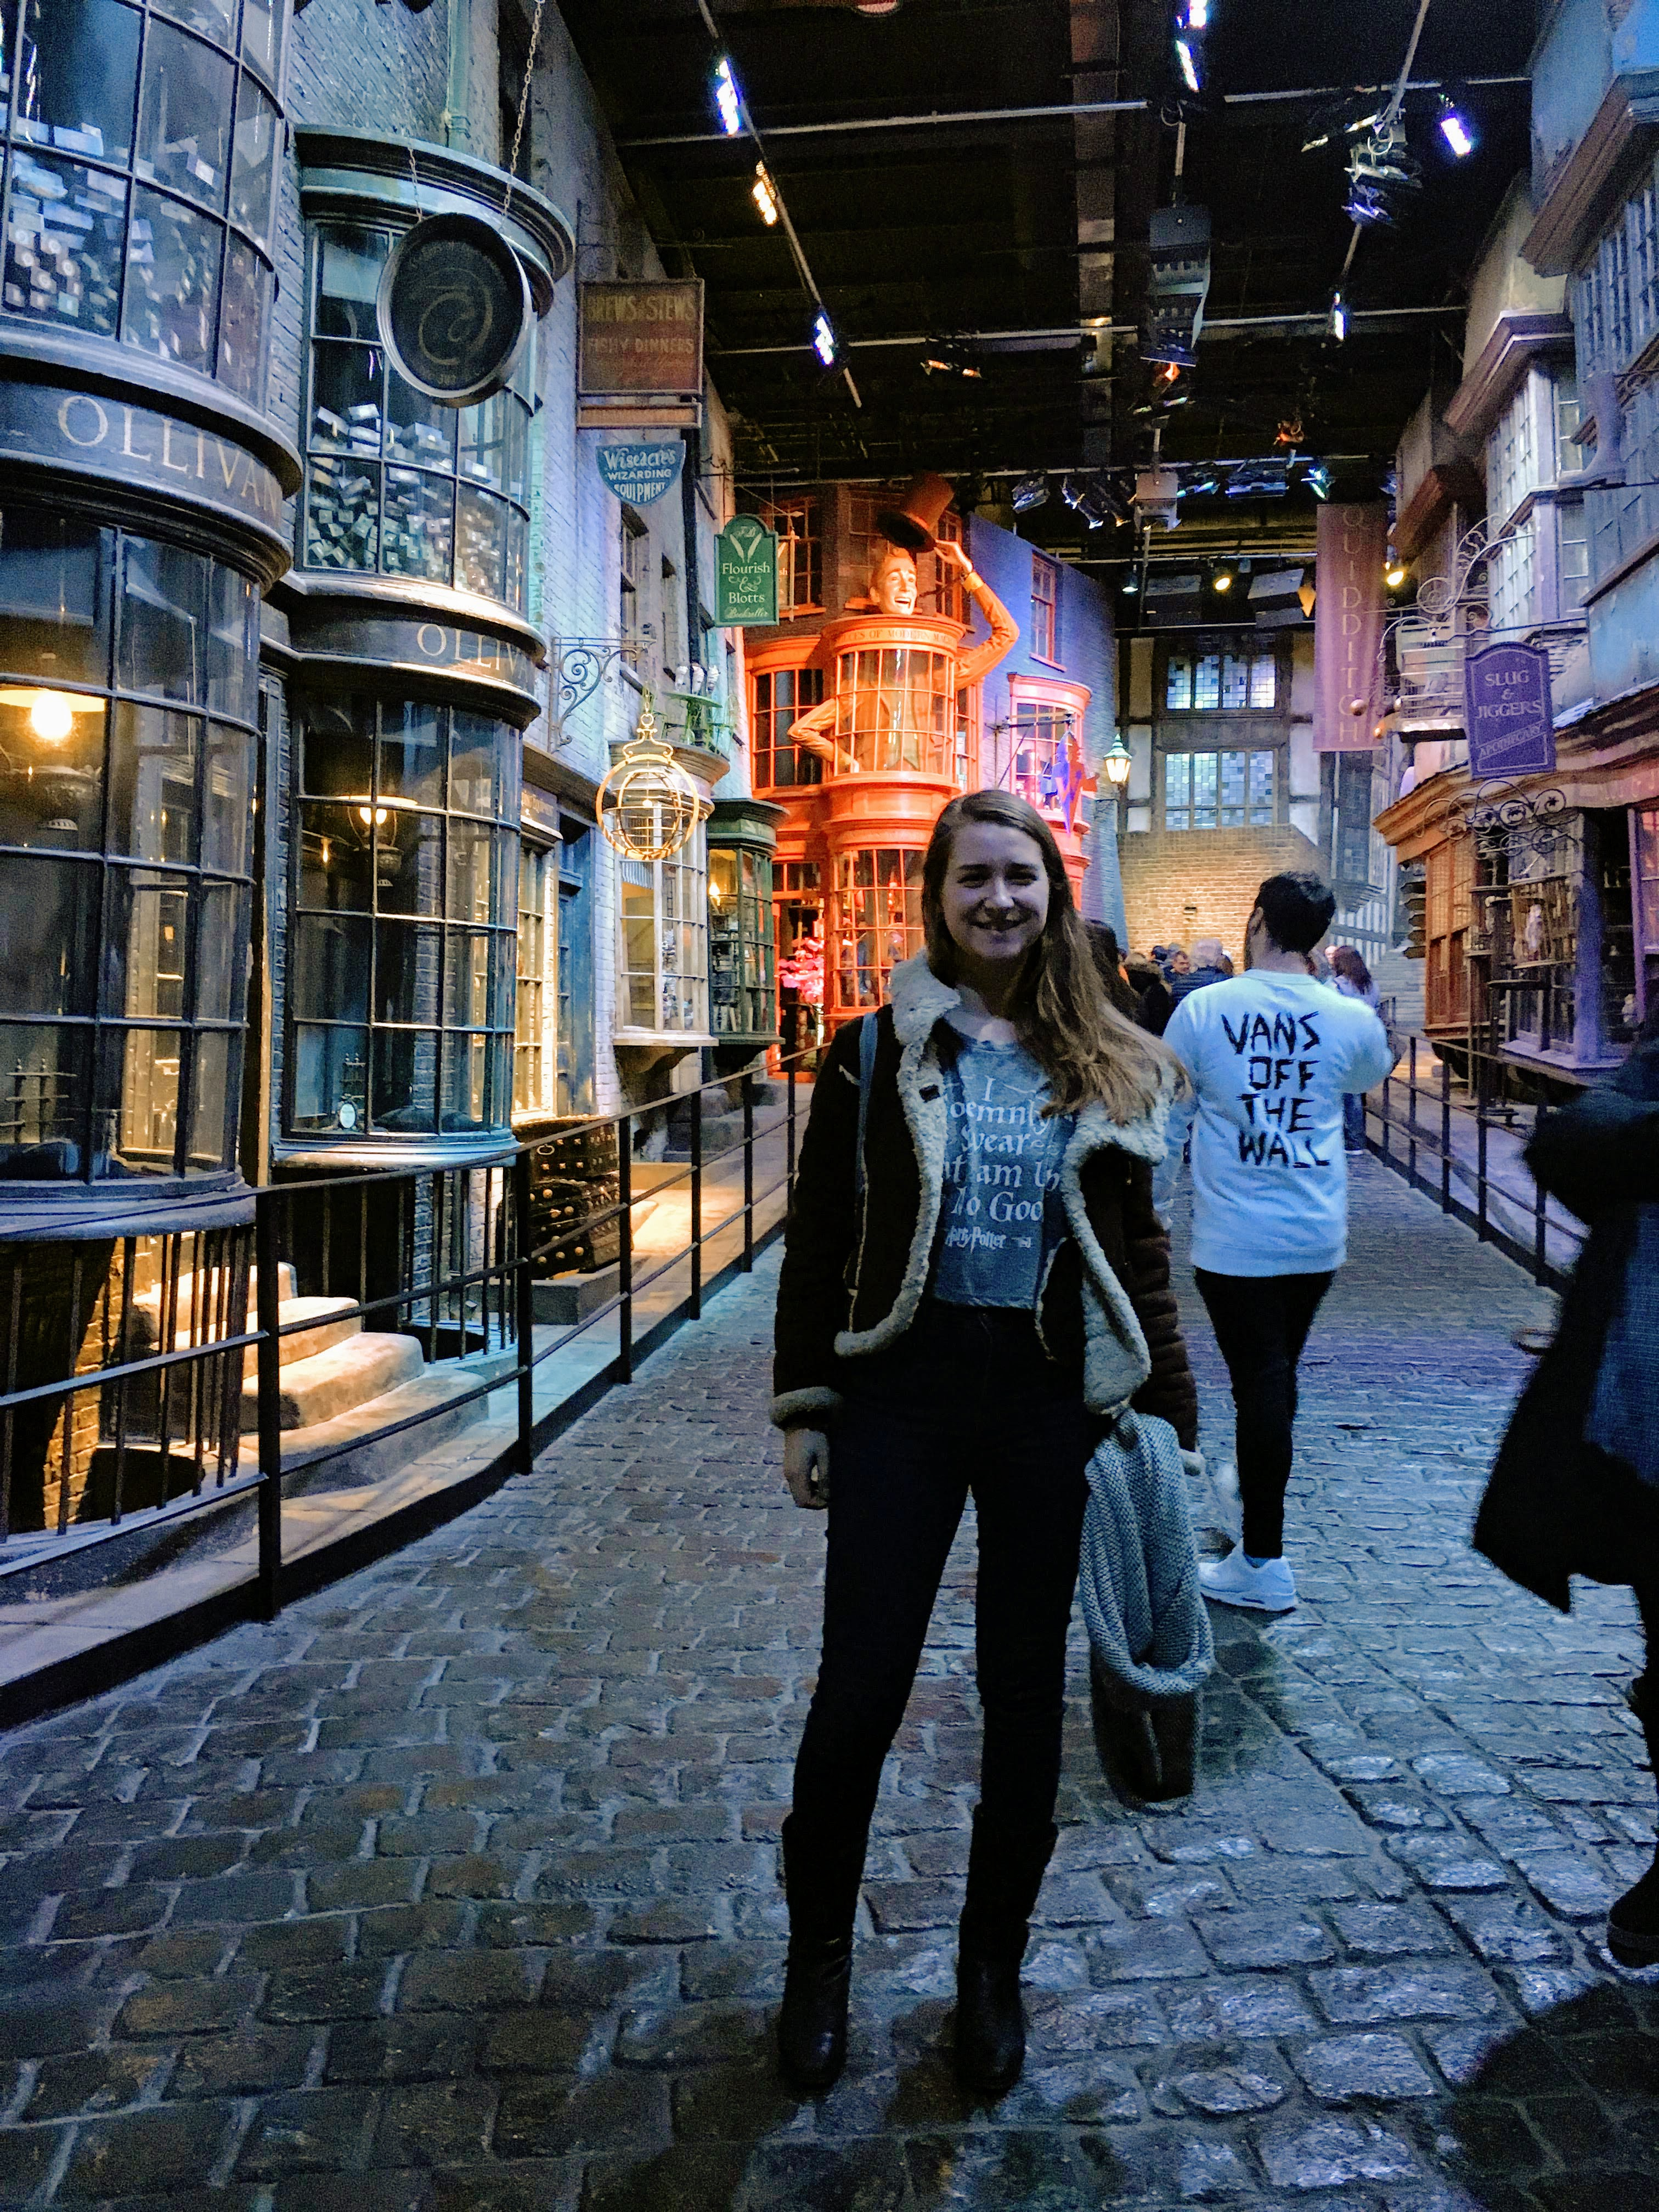 Woman standing in Diagon Alley movie set inside the Harry Potter Studio Tour London